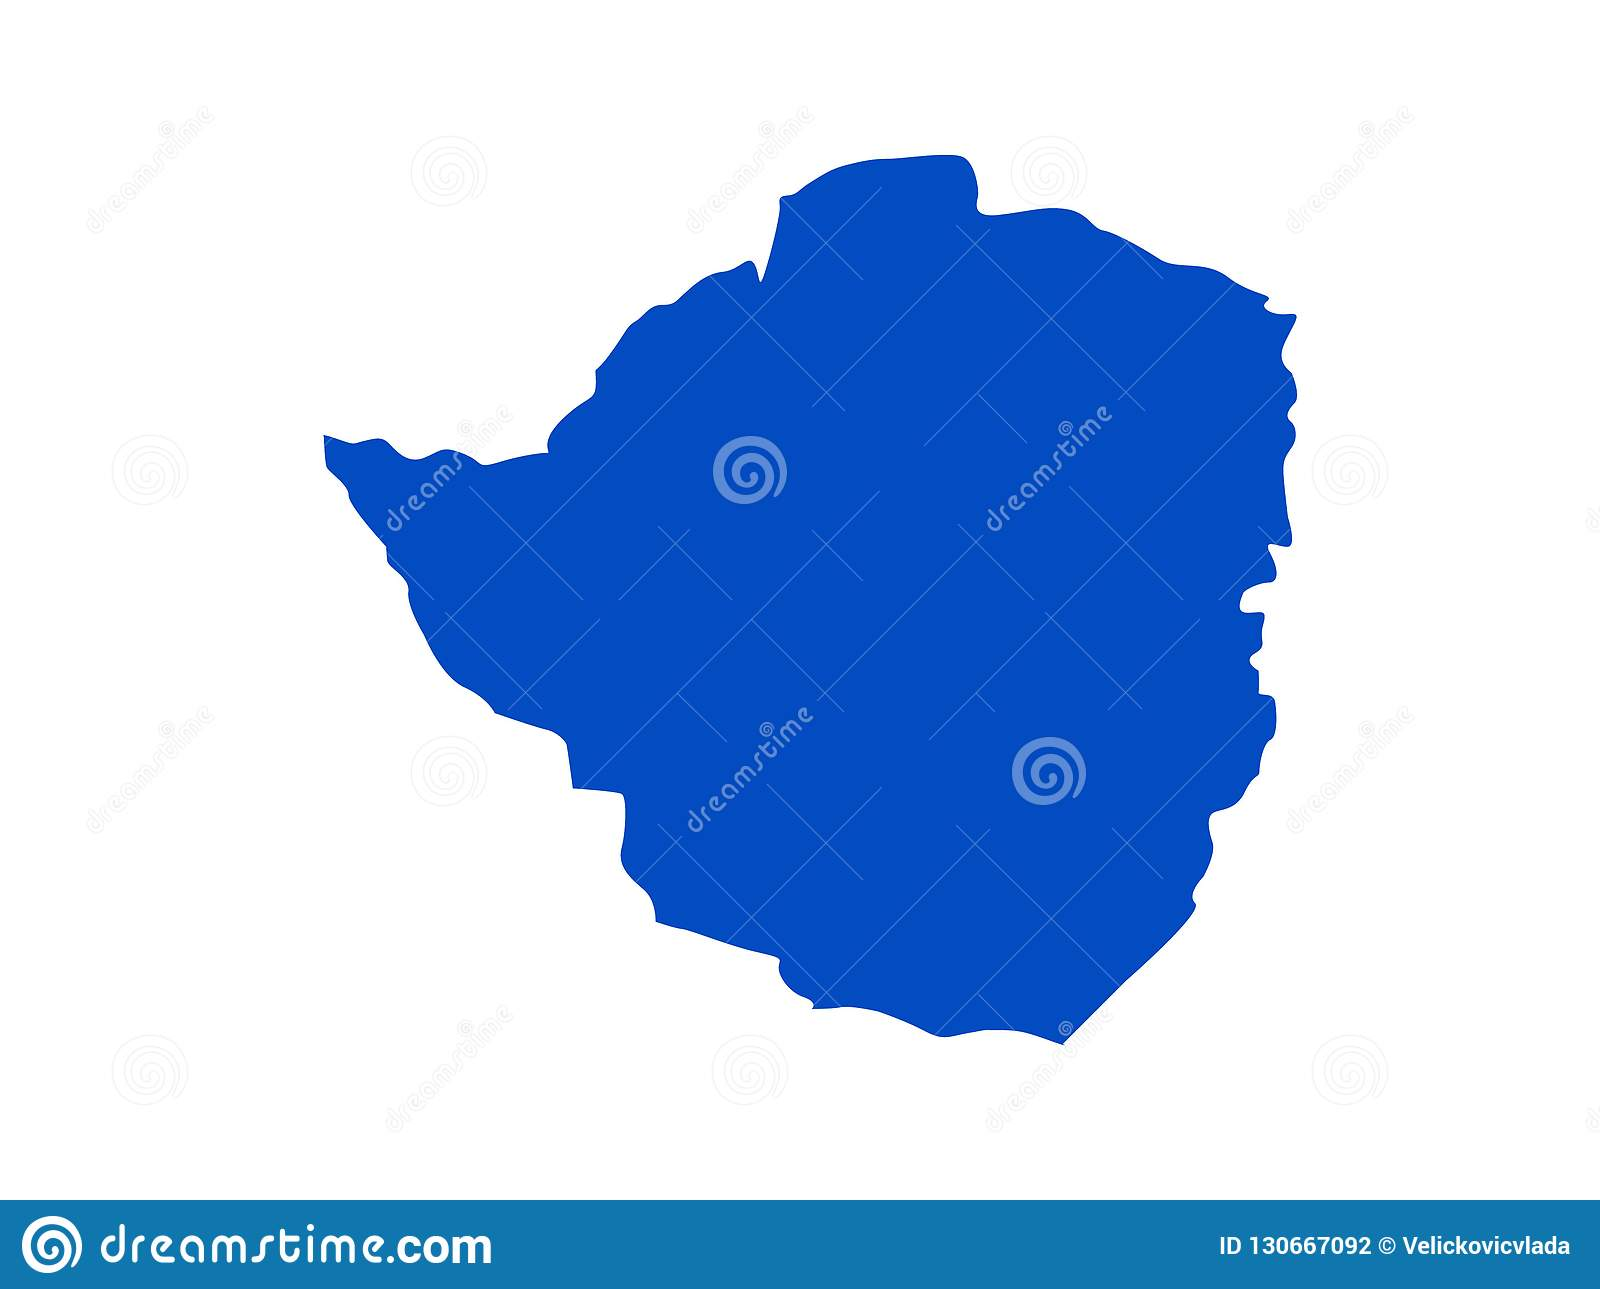 Map Of South Africa And Zimbabwe.Zimbabwe Map Country In Southern Africa Stock Vector